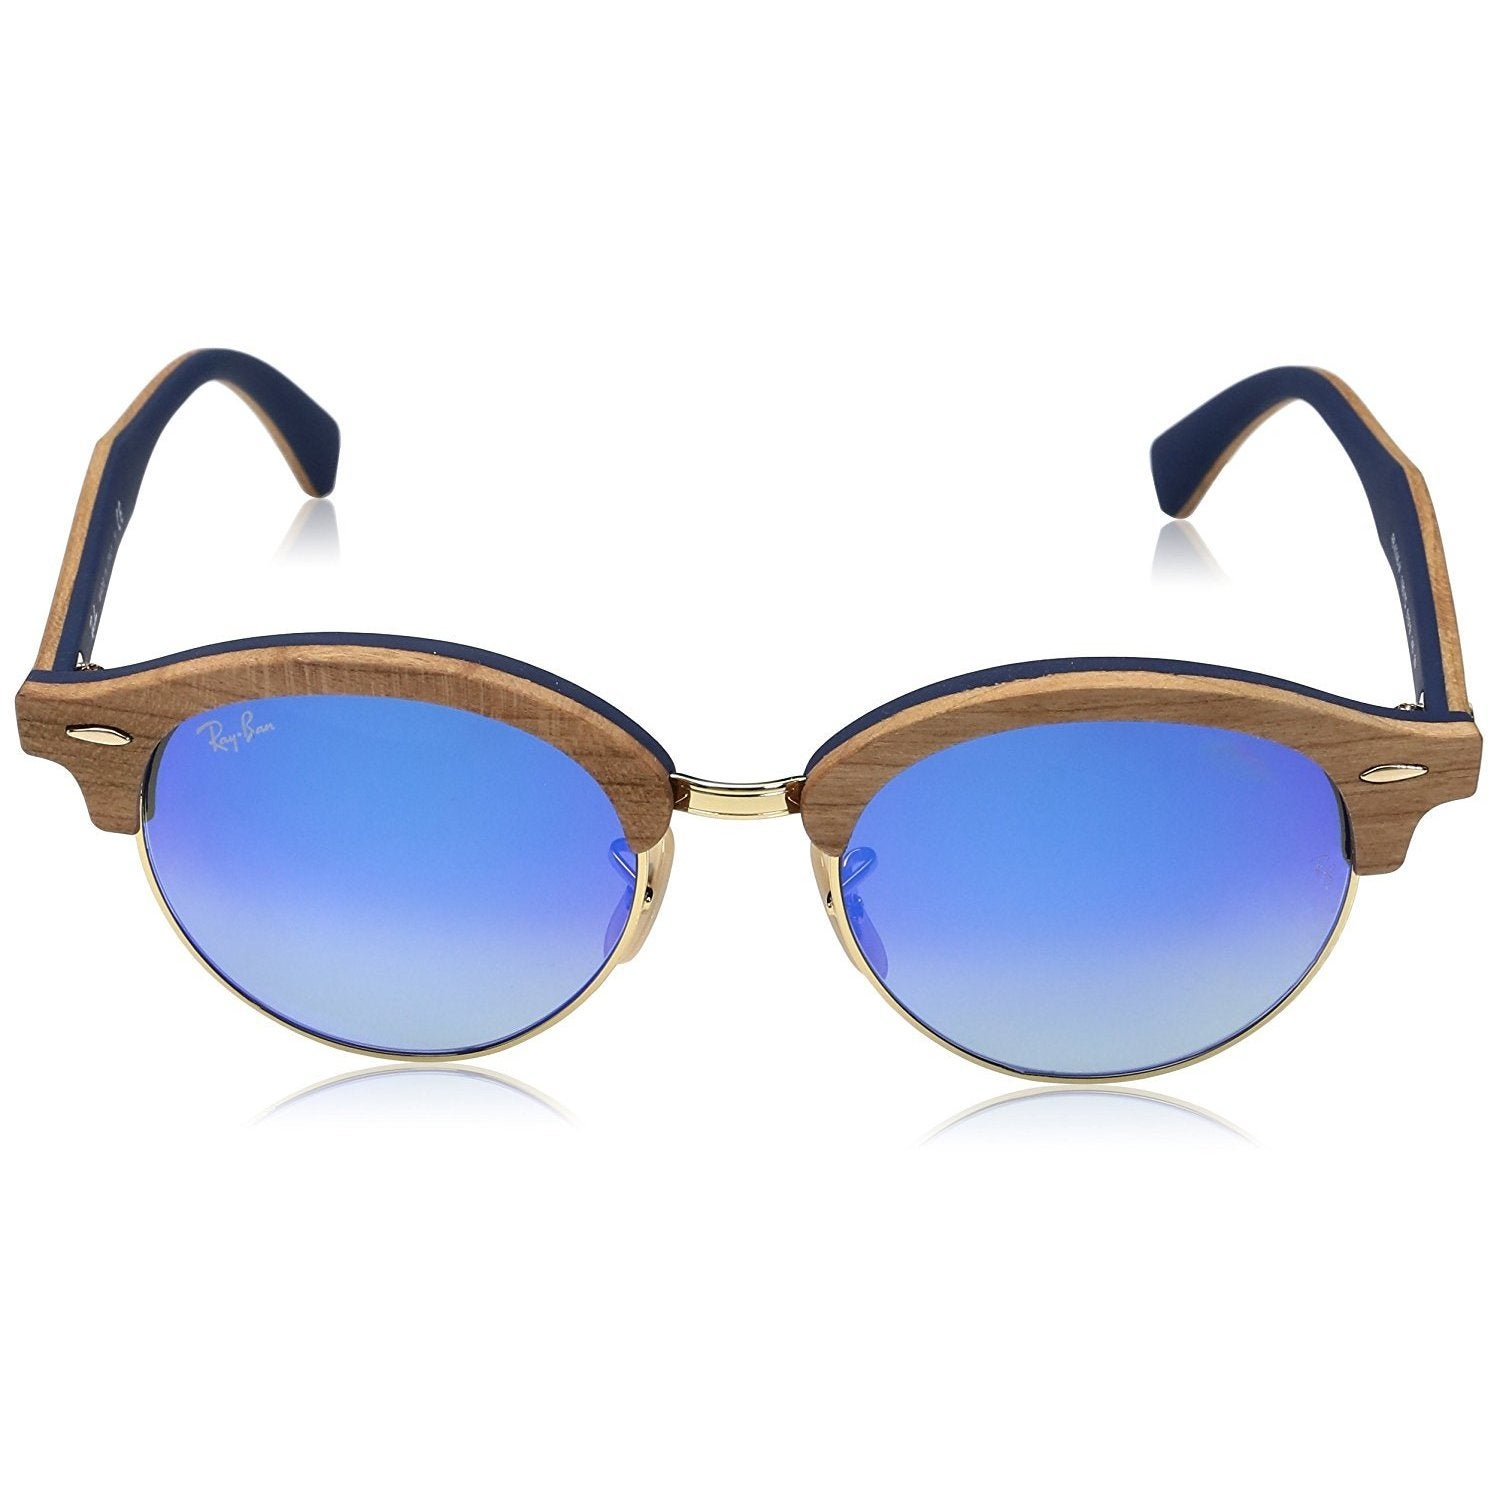 987a79435cfd1 Shop RayBan Clubround Wood Sunglasses - Tan - Medium - Free Shipping Today  - Overstock - 19577419